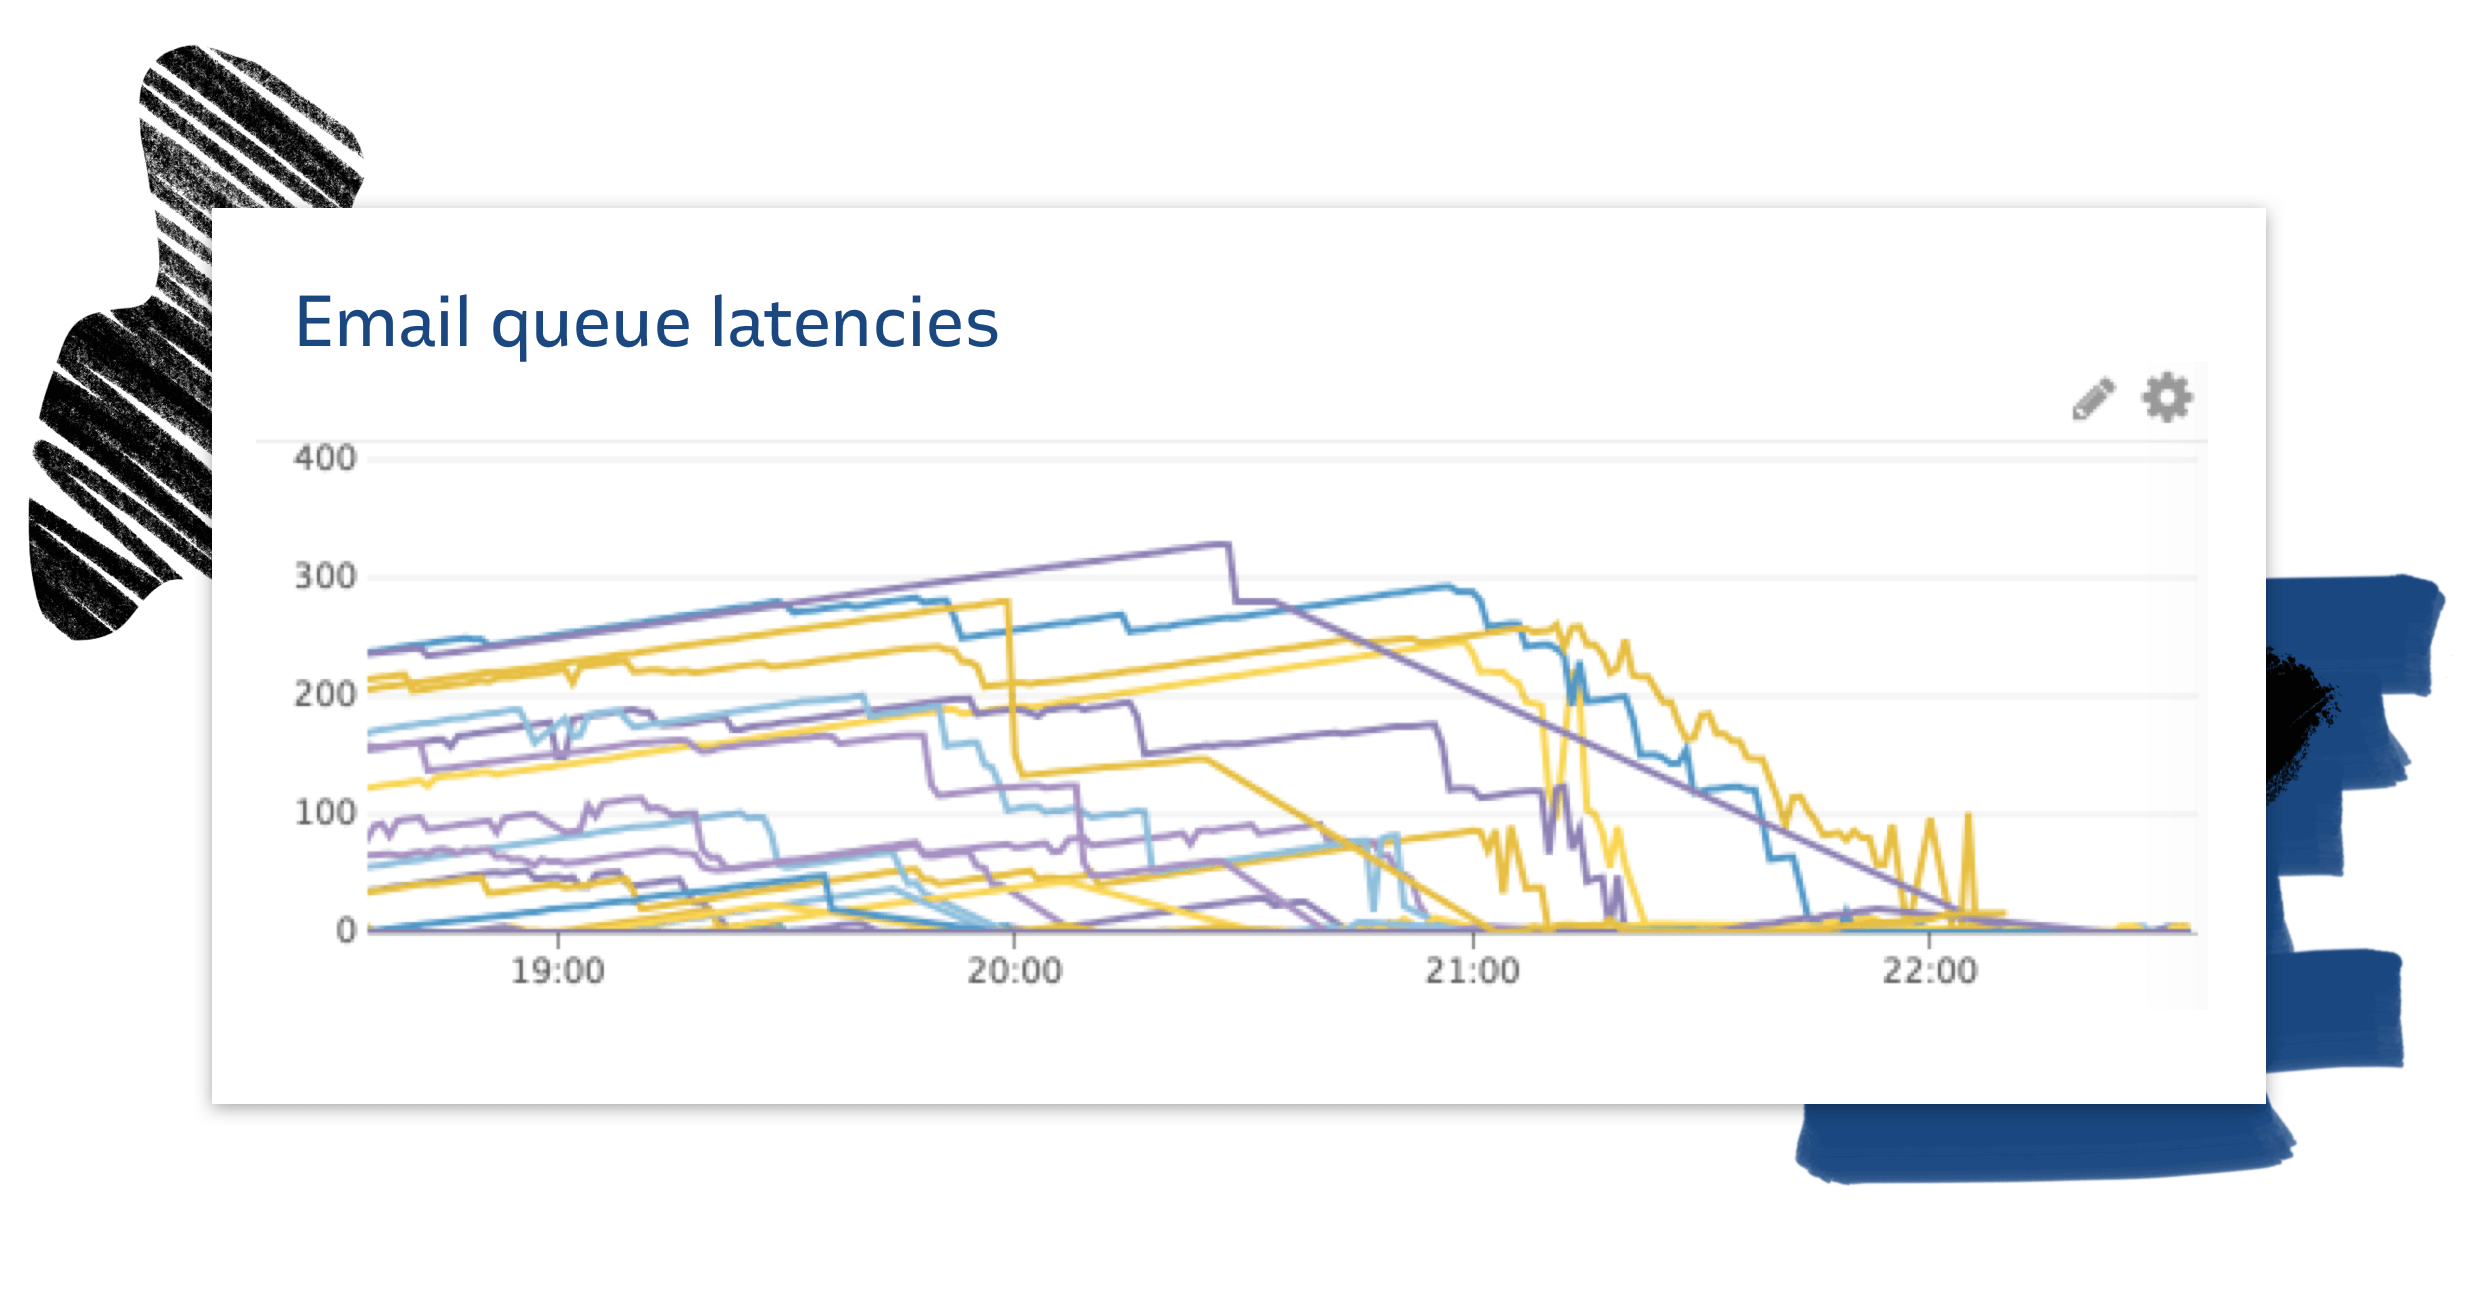 Email delivery queue latencies increased and then decreased during GDPR surge